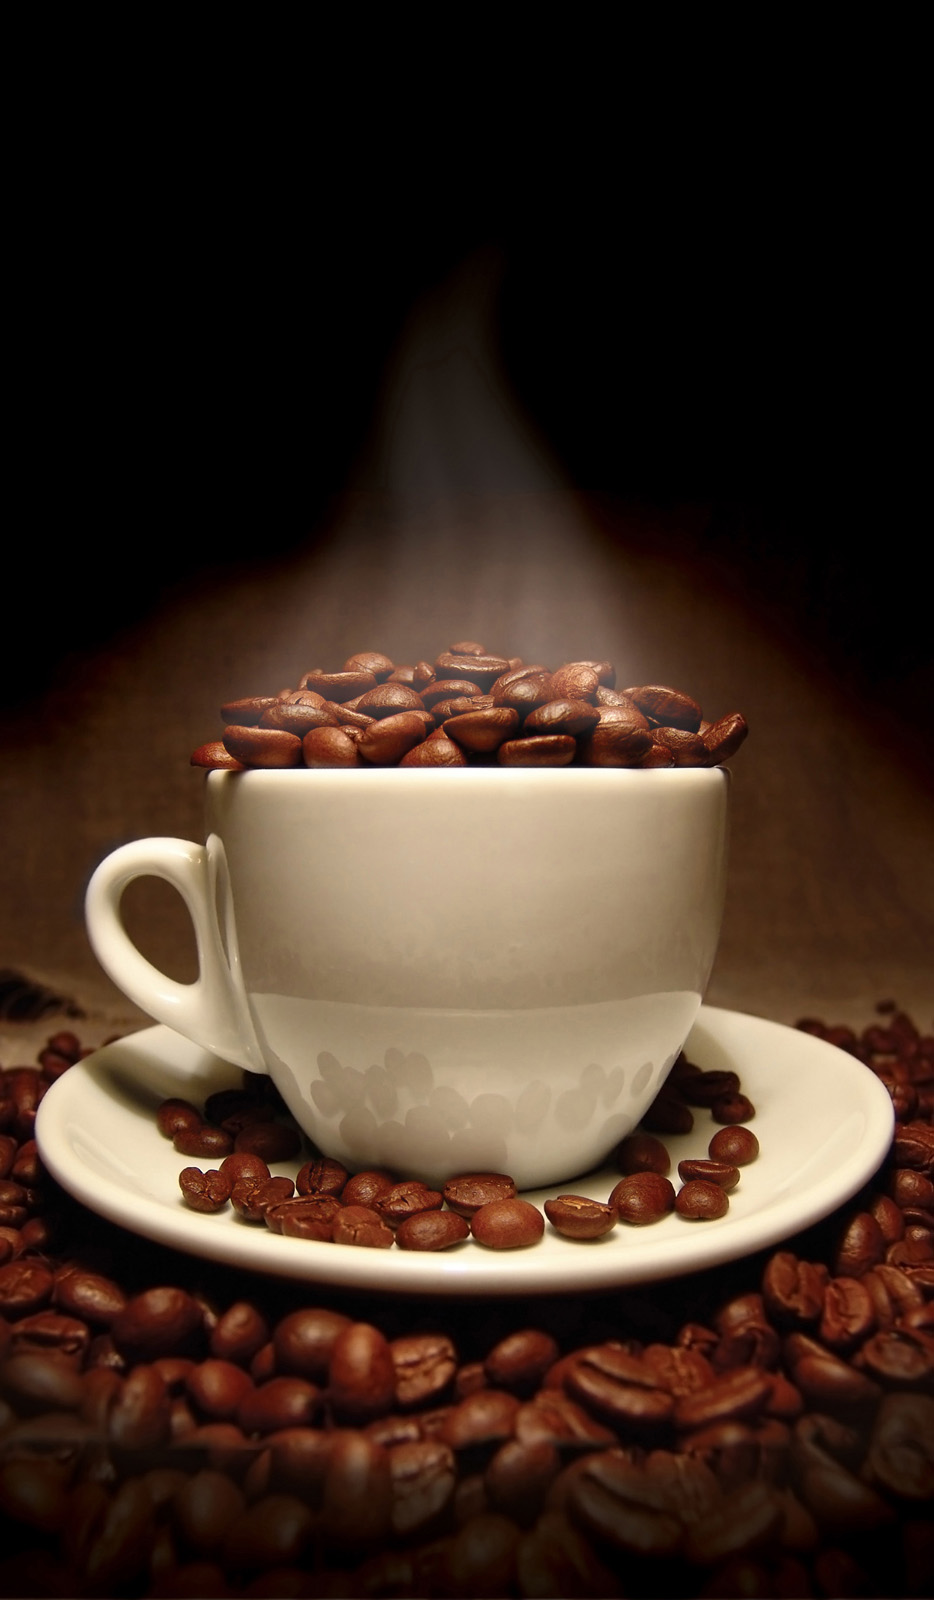 Coffee wallpaper high definition 14848